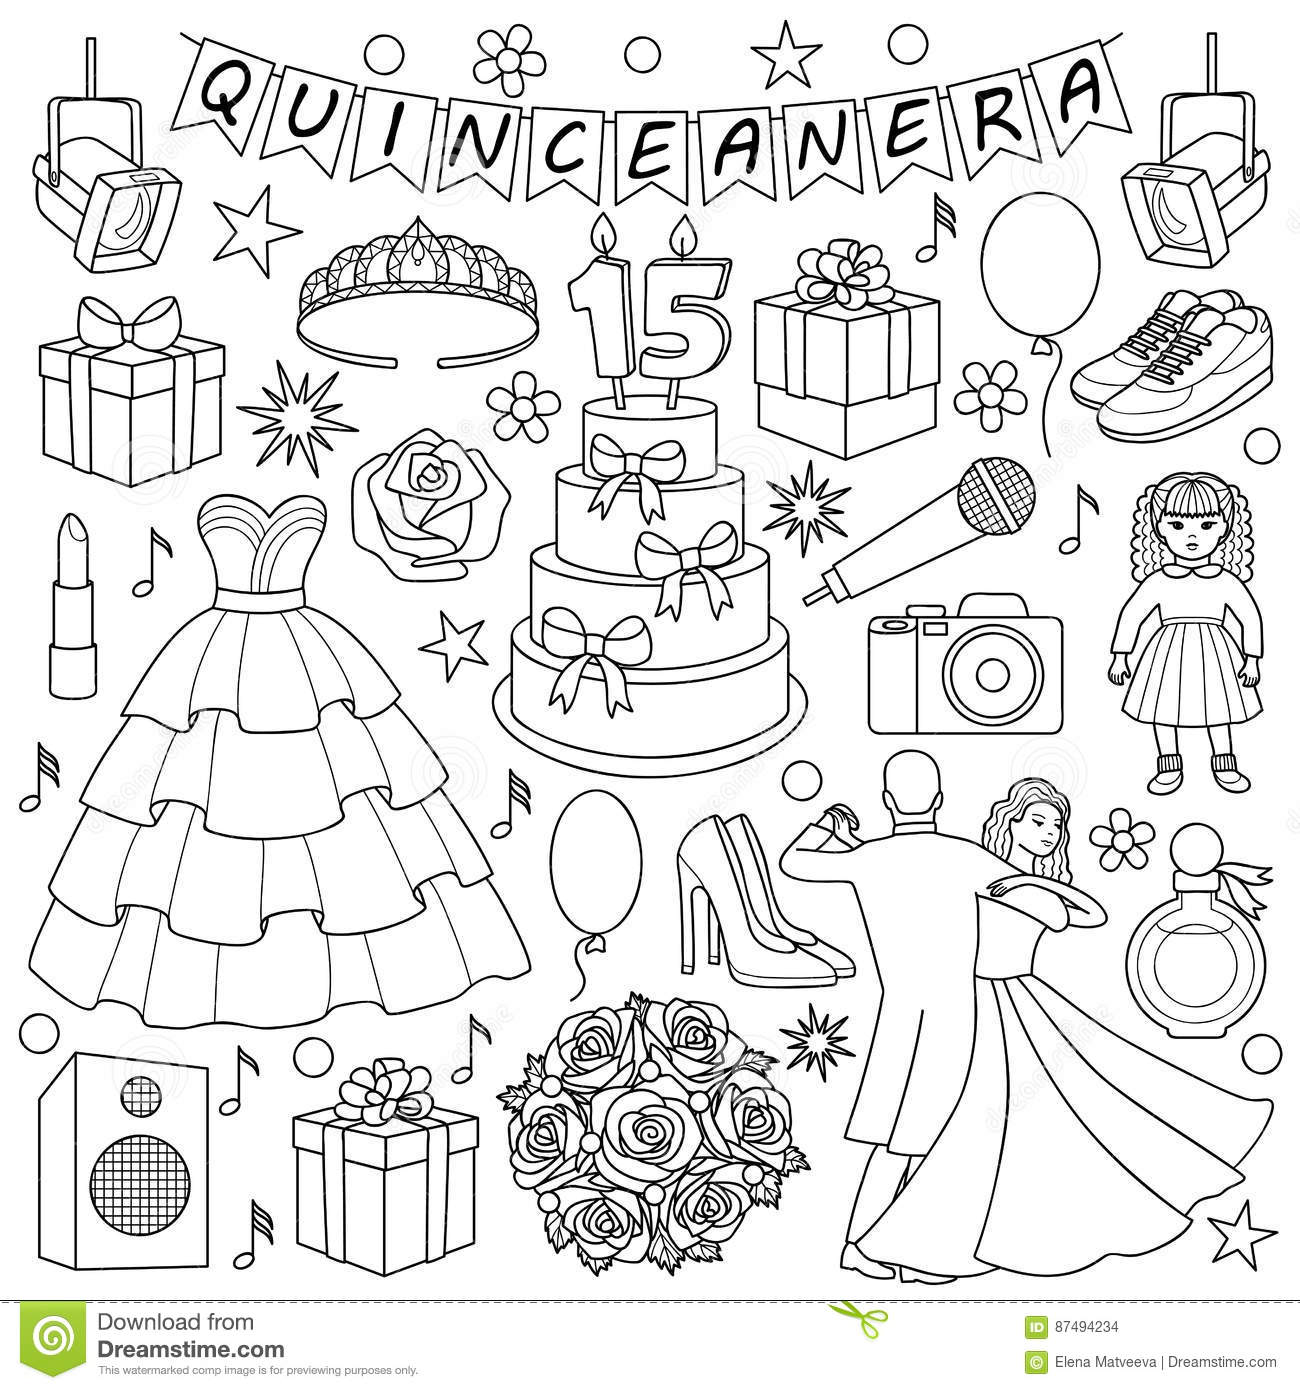 Sweet 16 birthday coloring pages sketch coloring page for Sweet sixteen coloring pages